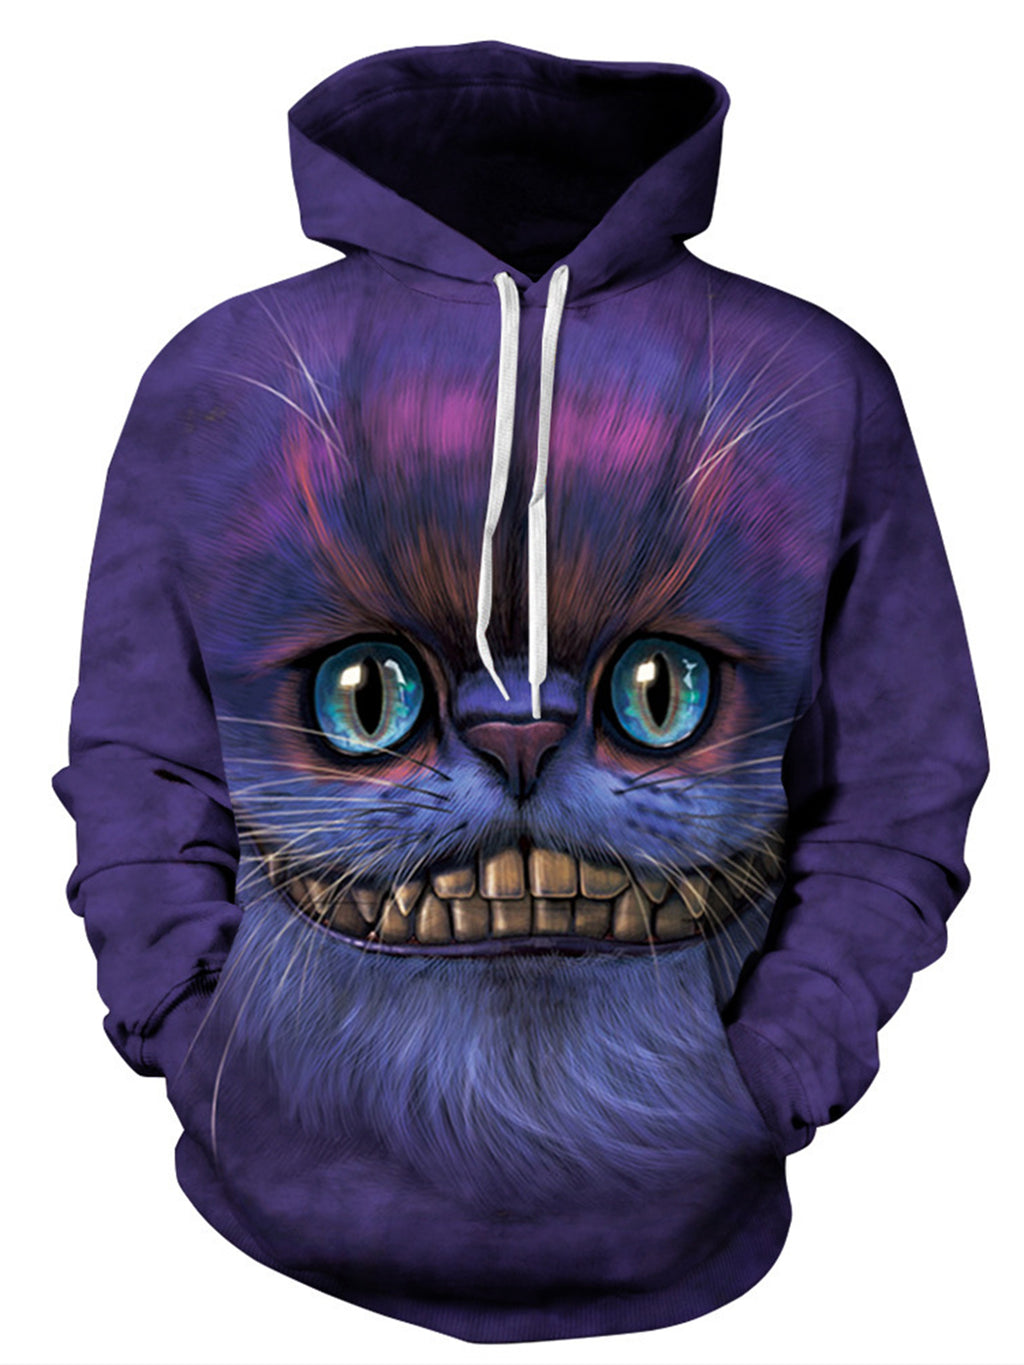 Cheshire Cat Printed 3D Casual Sweatshirts Hoodies